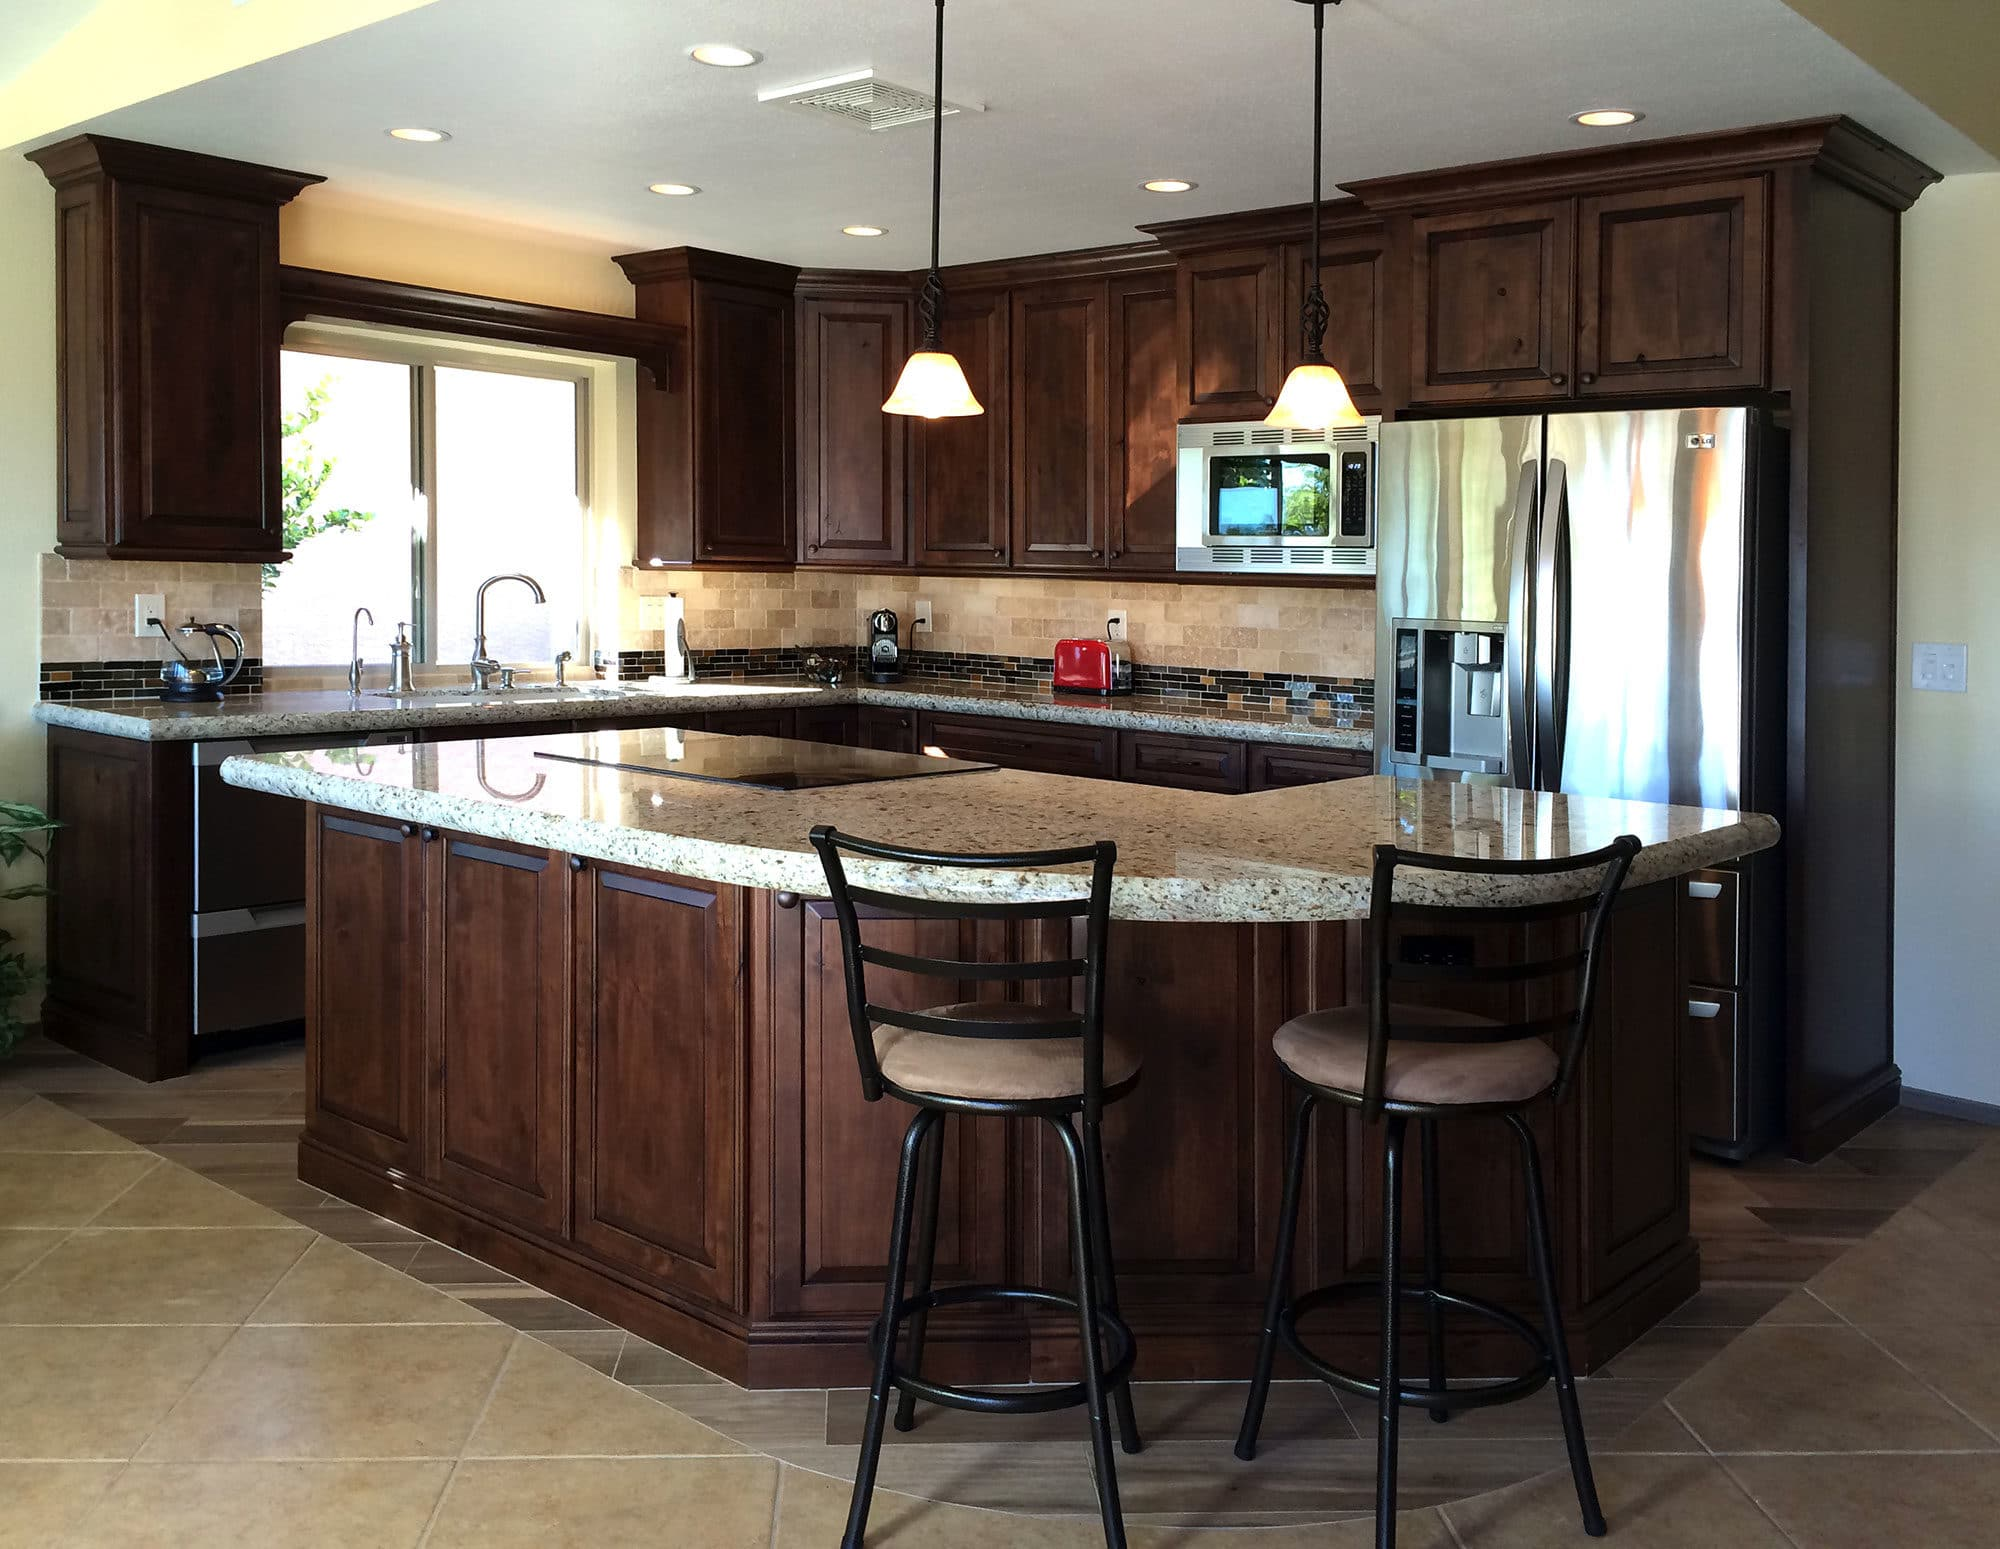 kitchen remodel ahwatukee kitchen remodel scottsdale Kitchen Remodel Ahwatukee AZ